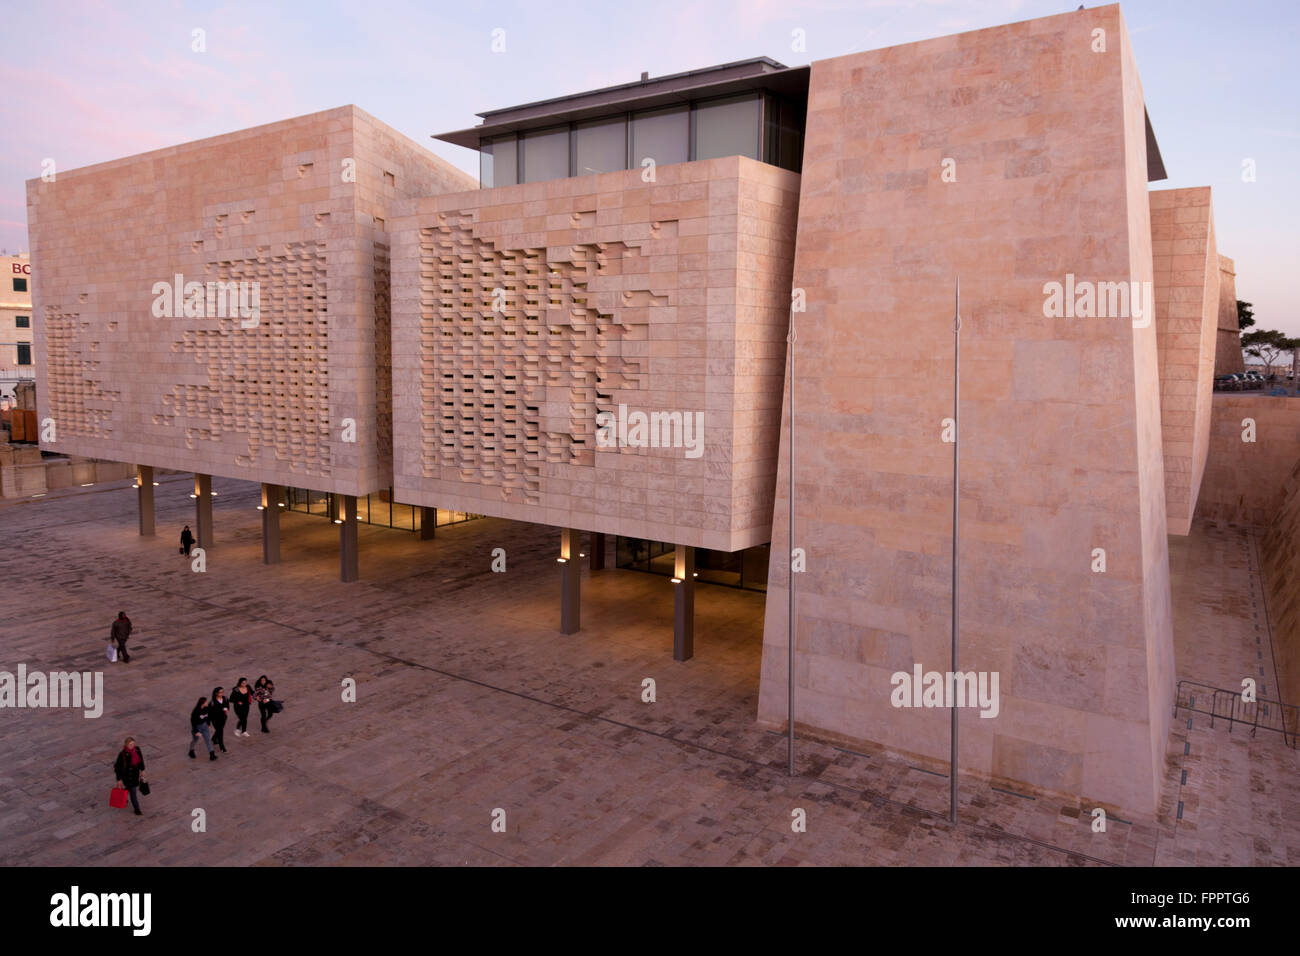 The blocks of the new parliament in Valletta are a minimalist and angular continuity of the nearby pentagonal Cavalier. - Stock Image